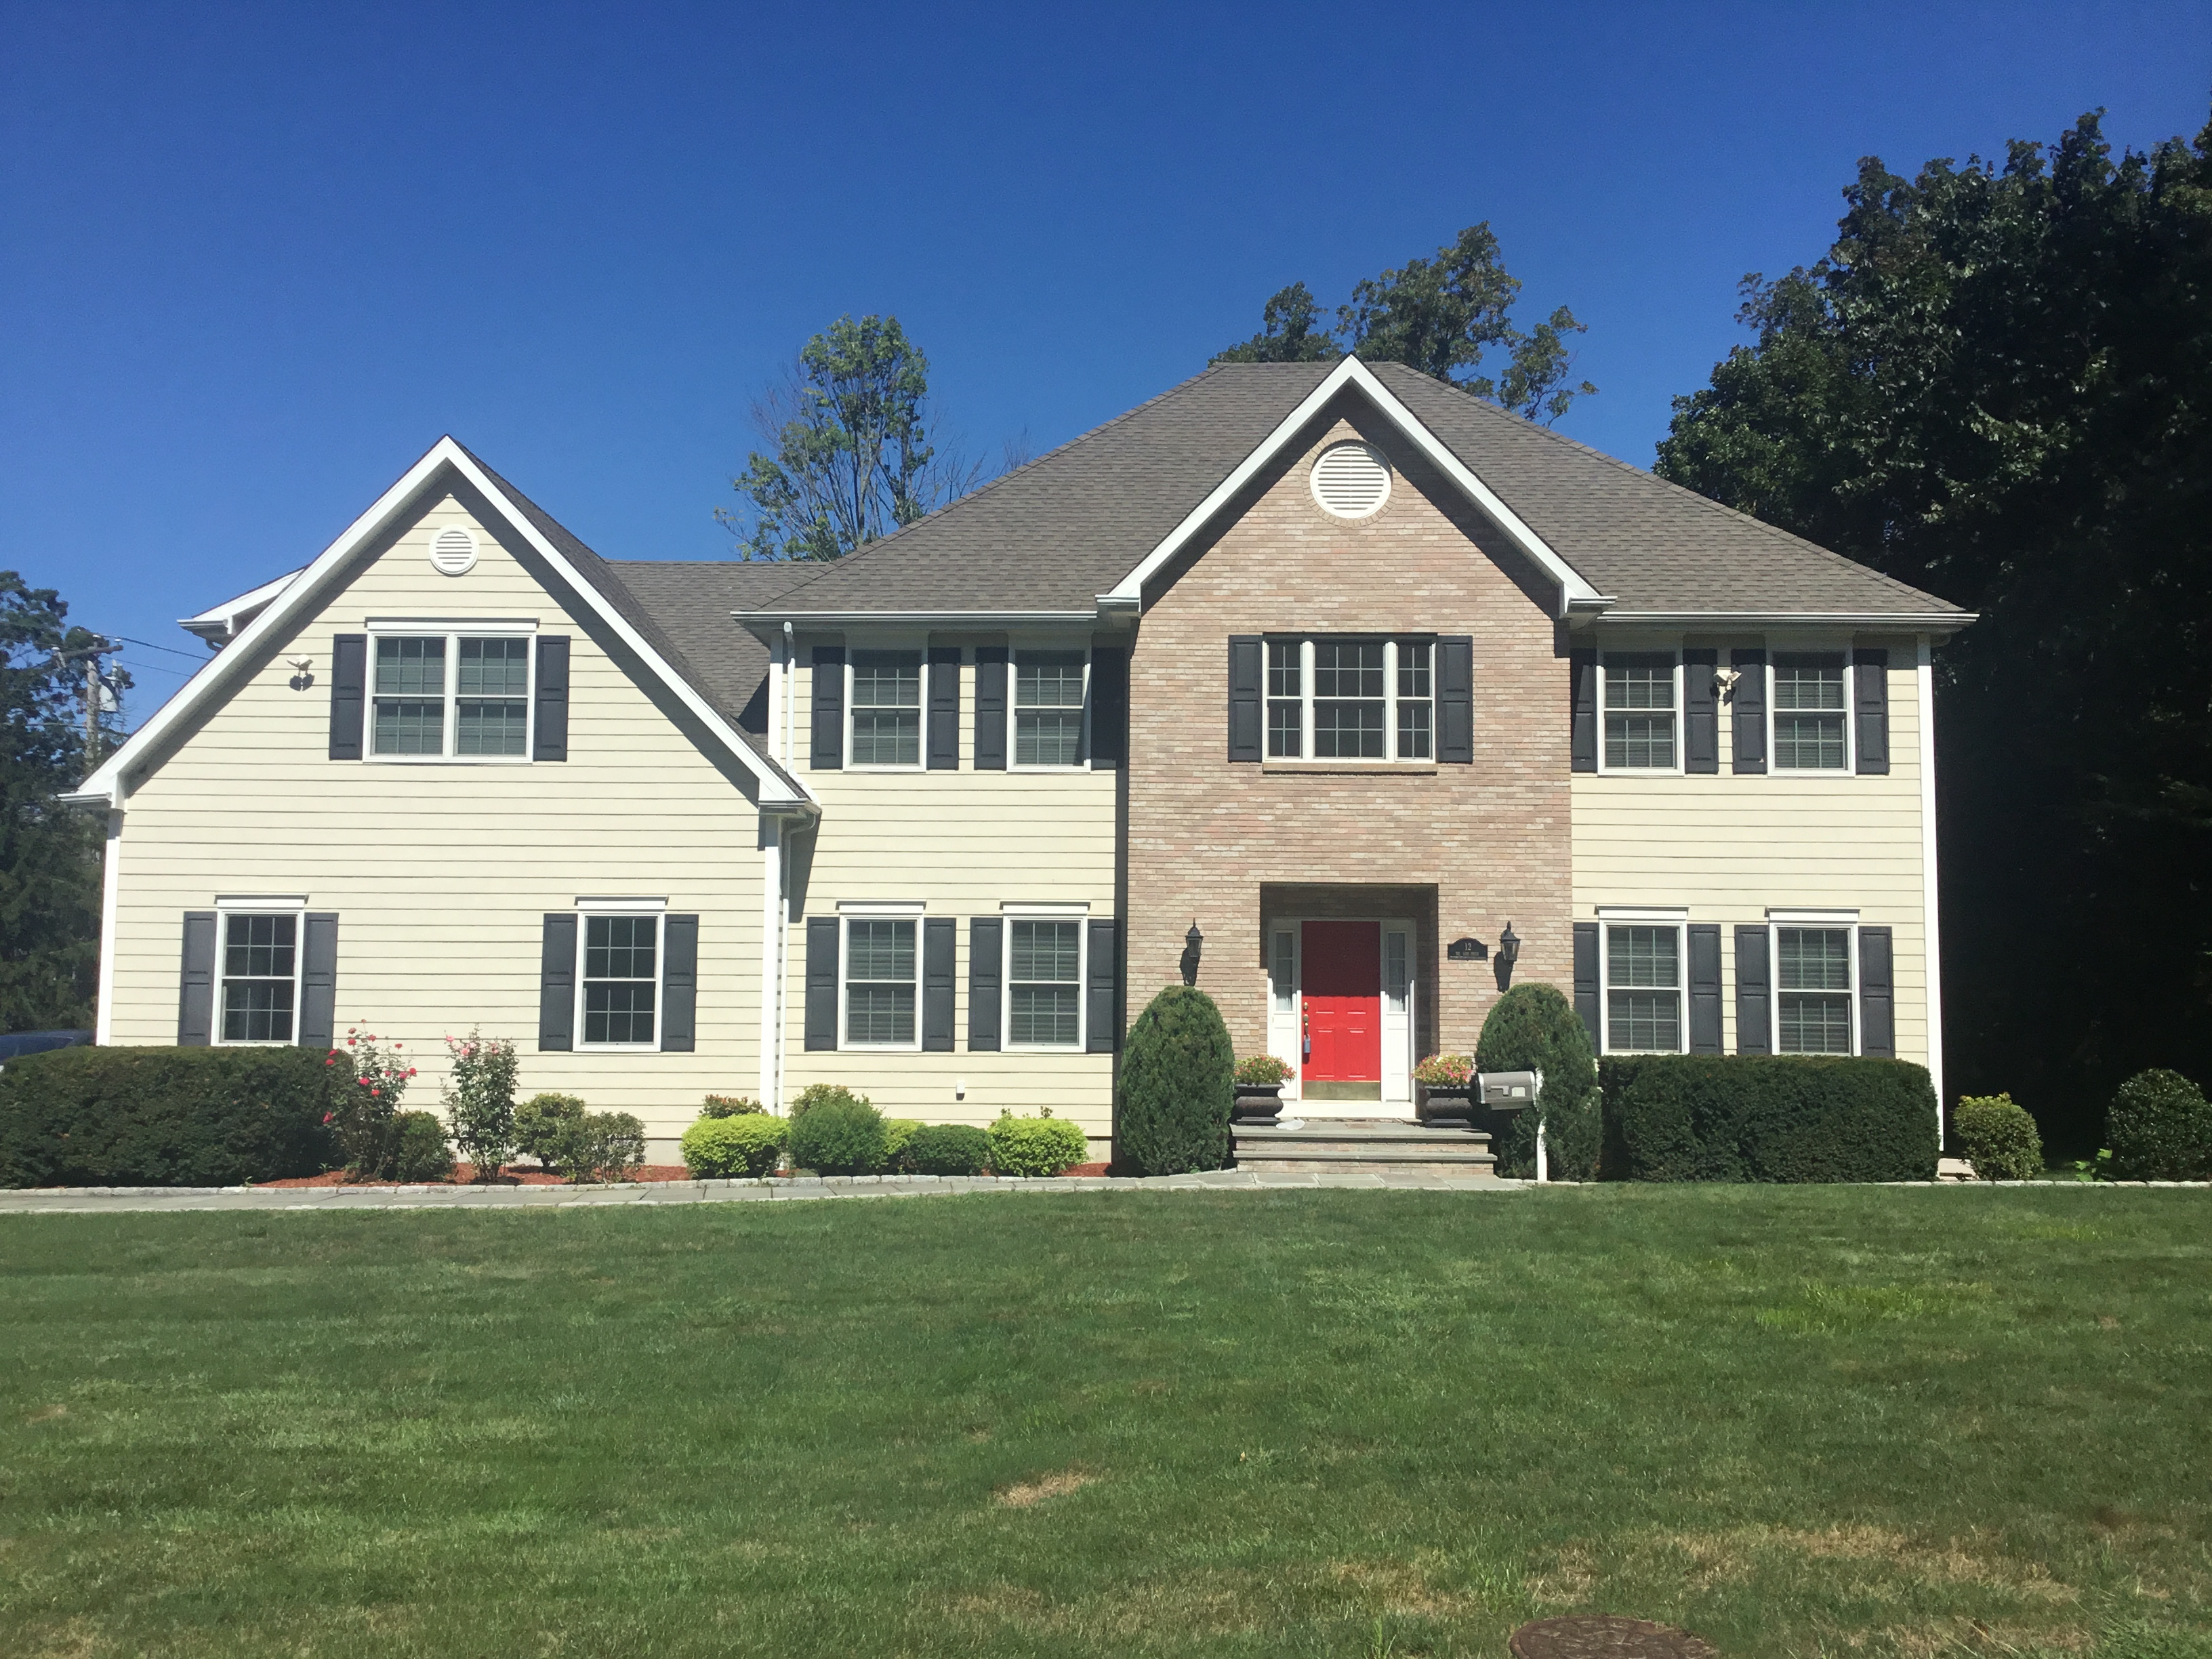 Single Family Home for Sale at New in Newfield 12 Bel Aire Drive Stamford, Connecticut, 06905 United States